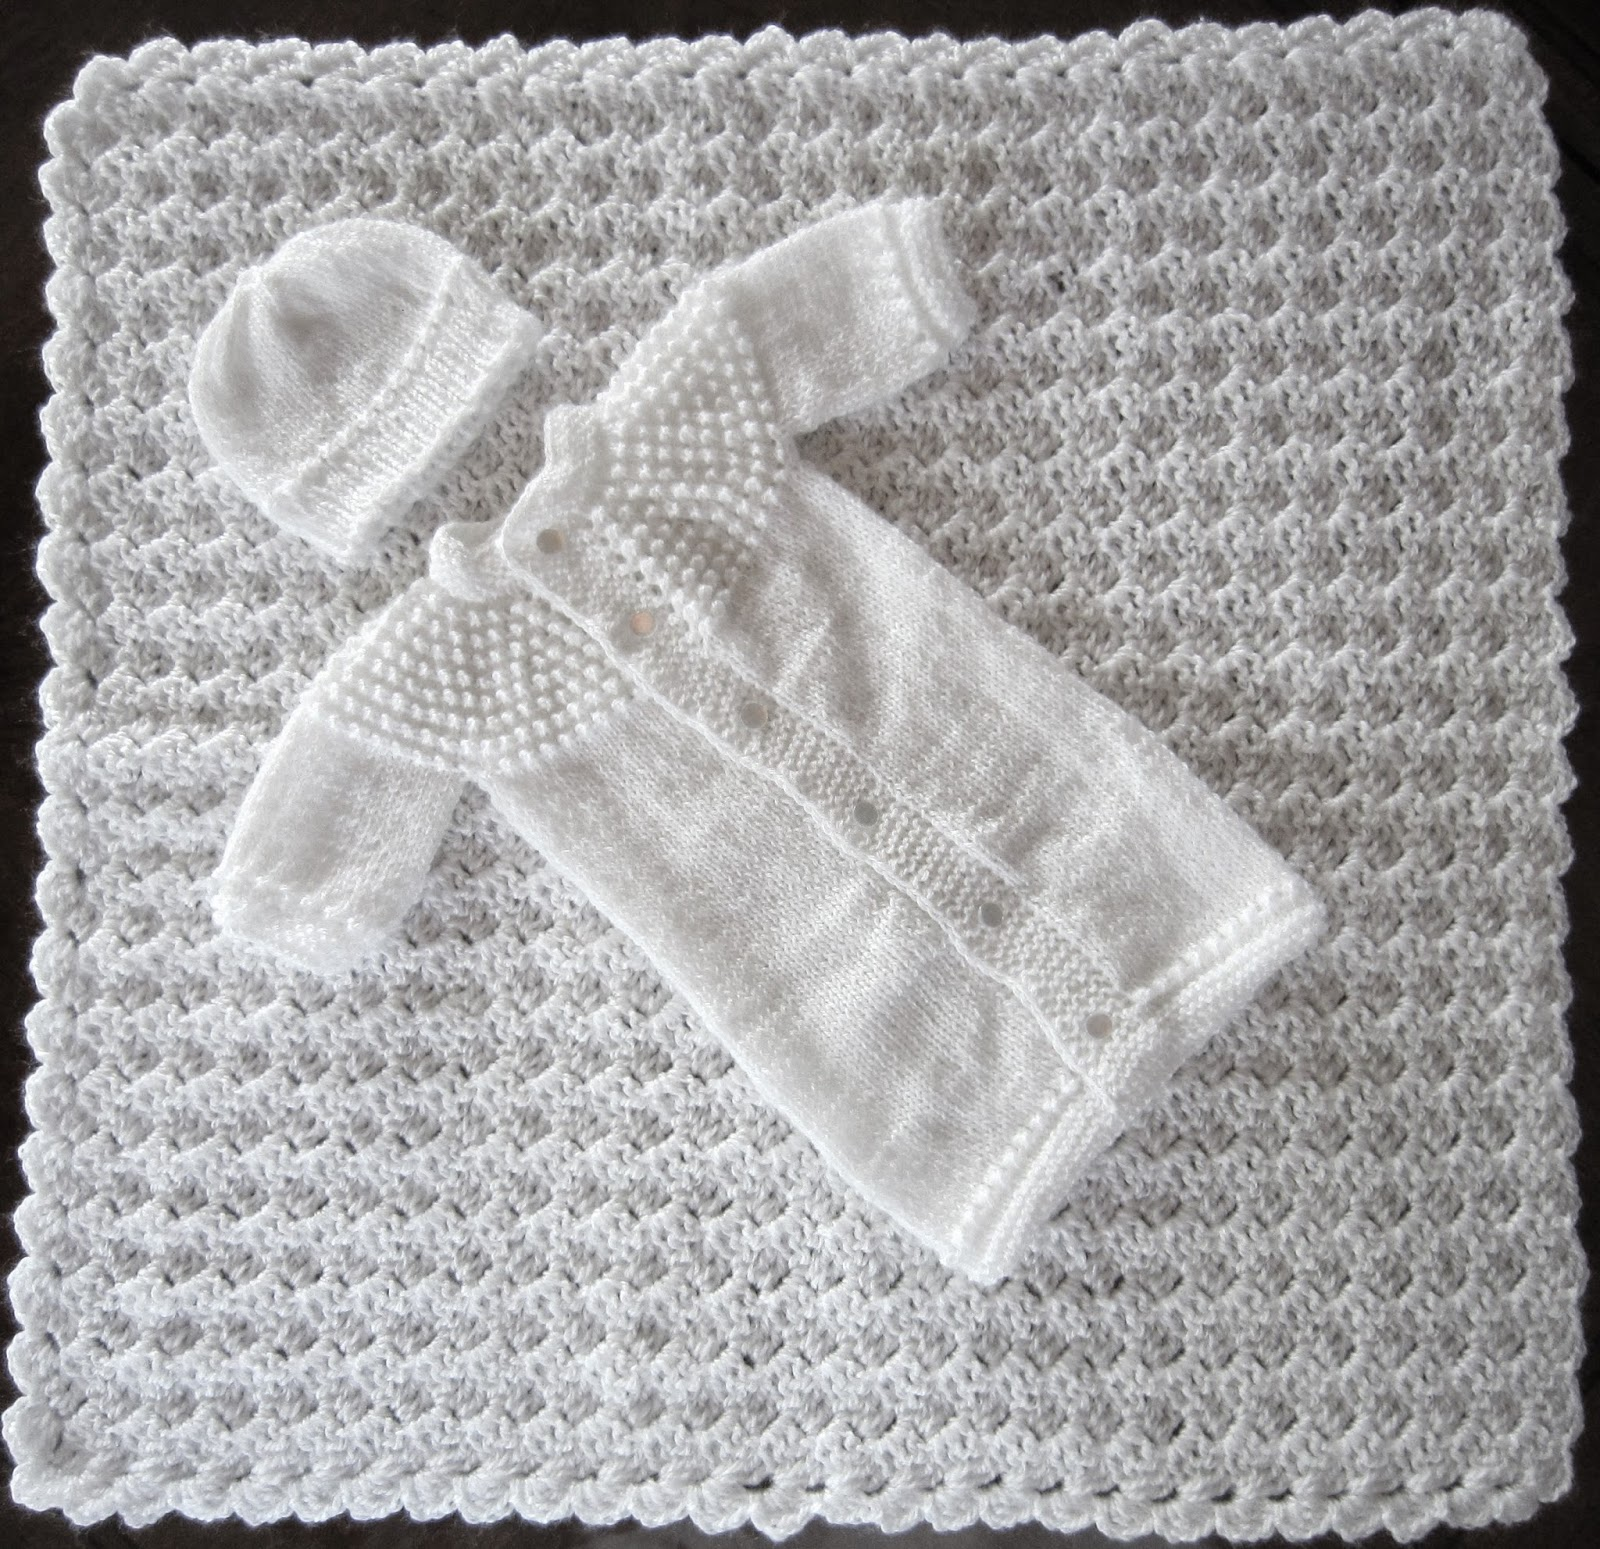 Free Crochet Patterns Christening Blankets : Sea Trail Grandmas: FREE PATTERN CHRISTENING OR BURIAL SET ...